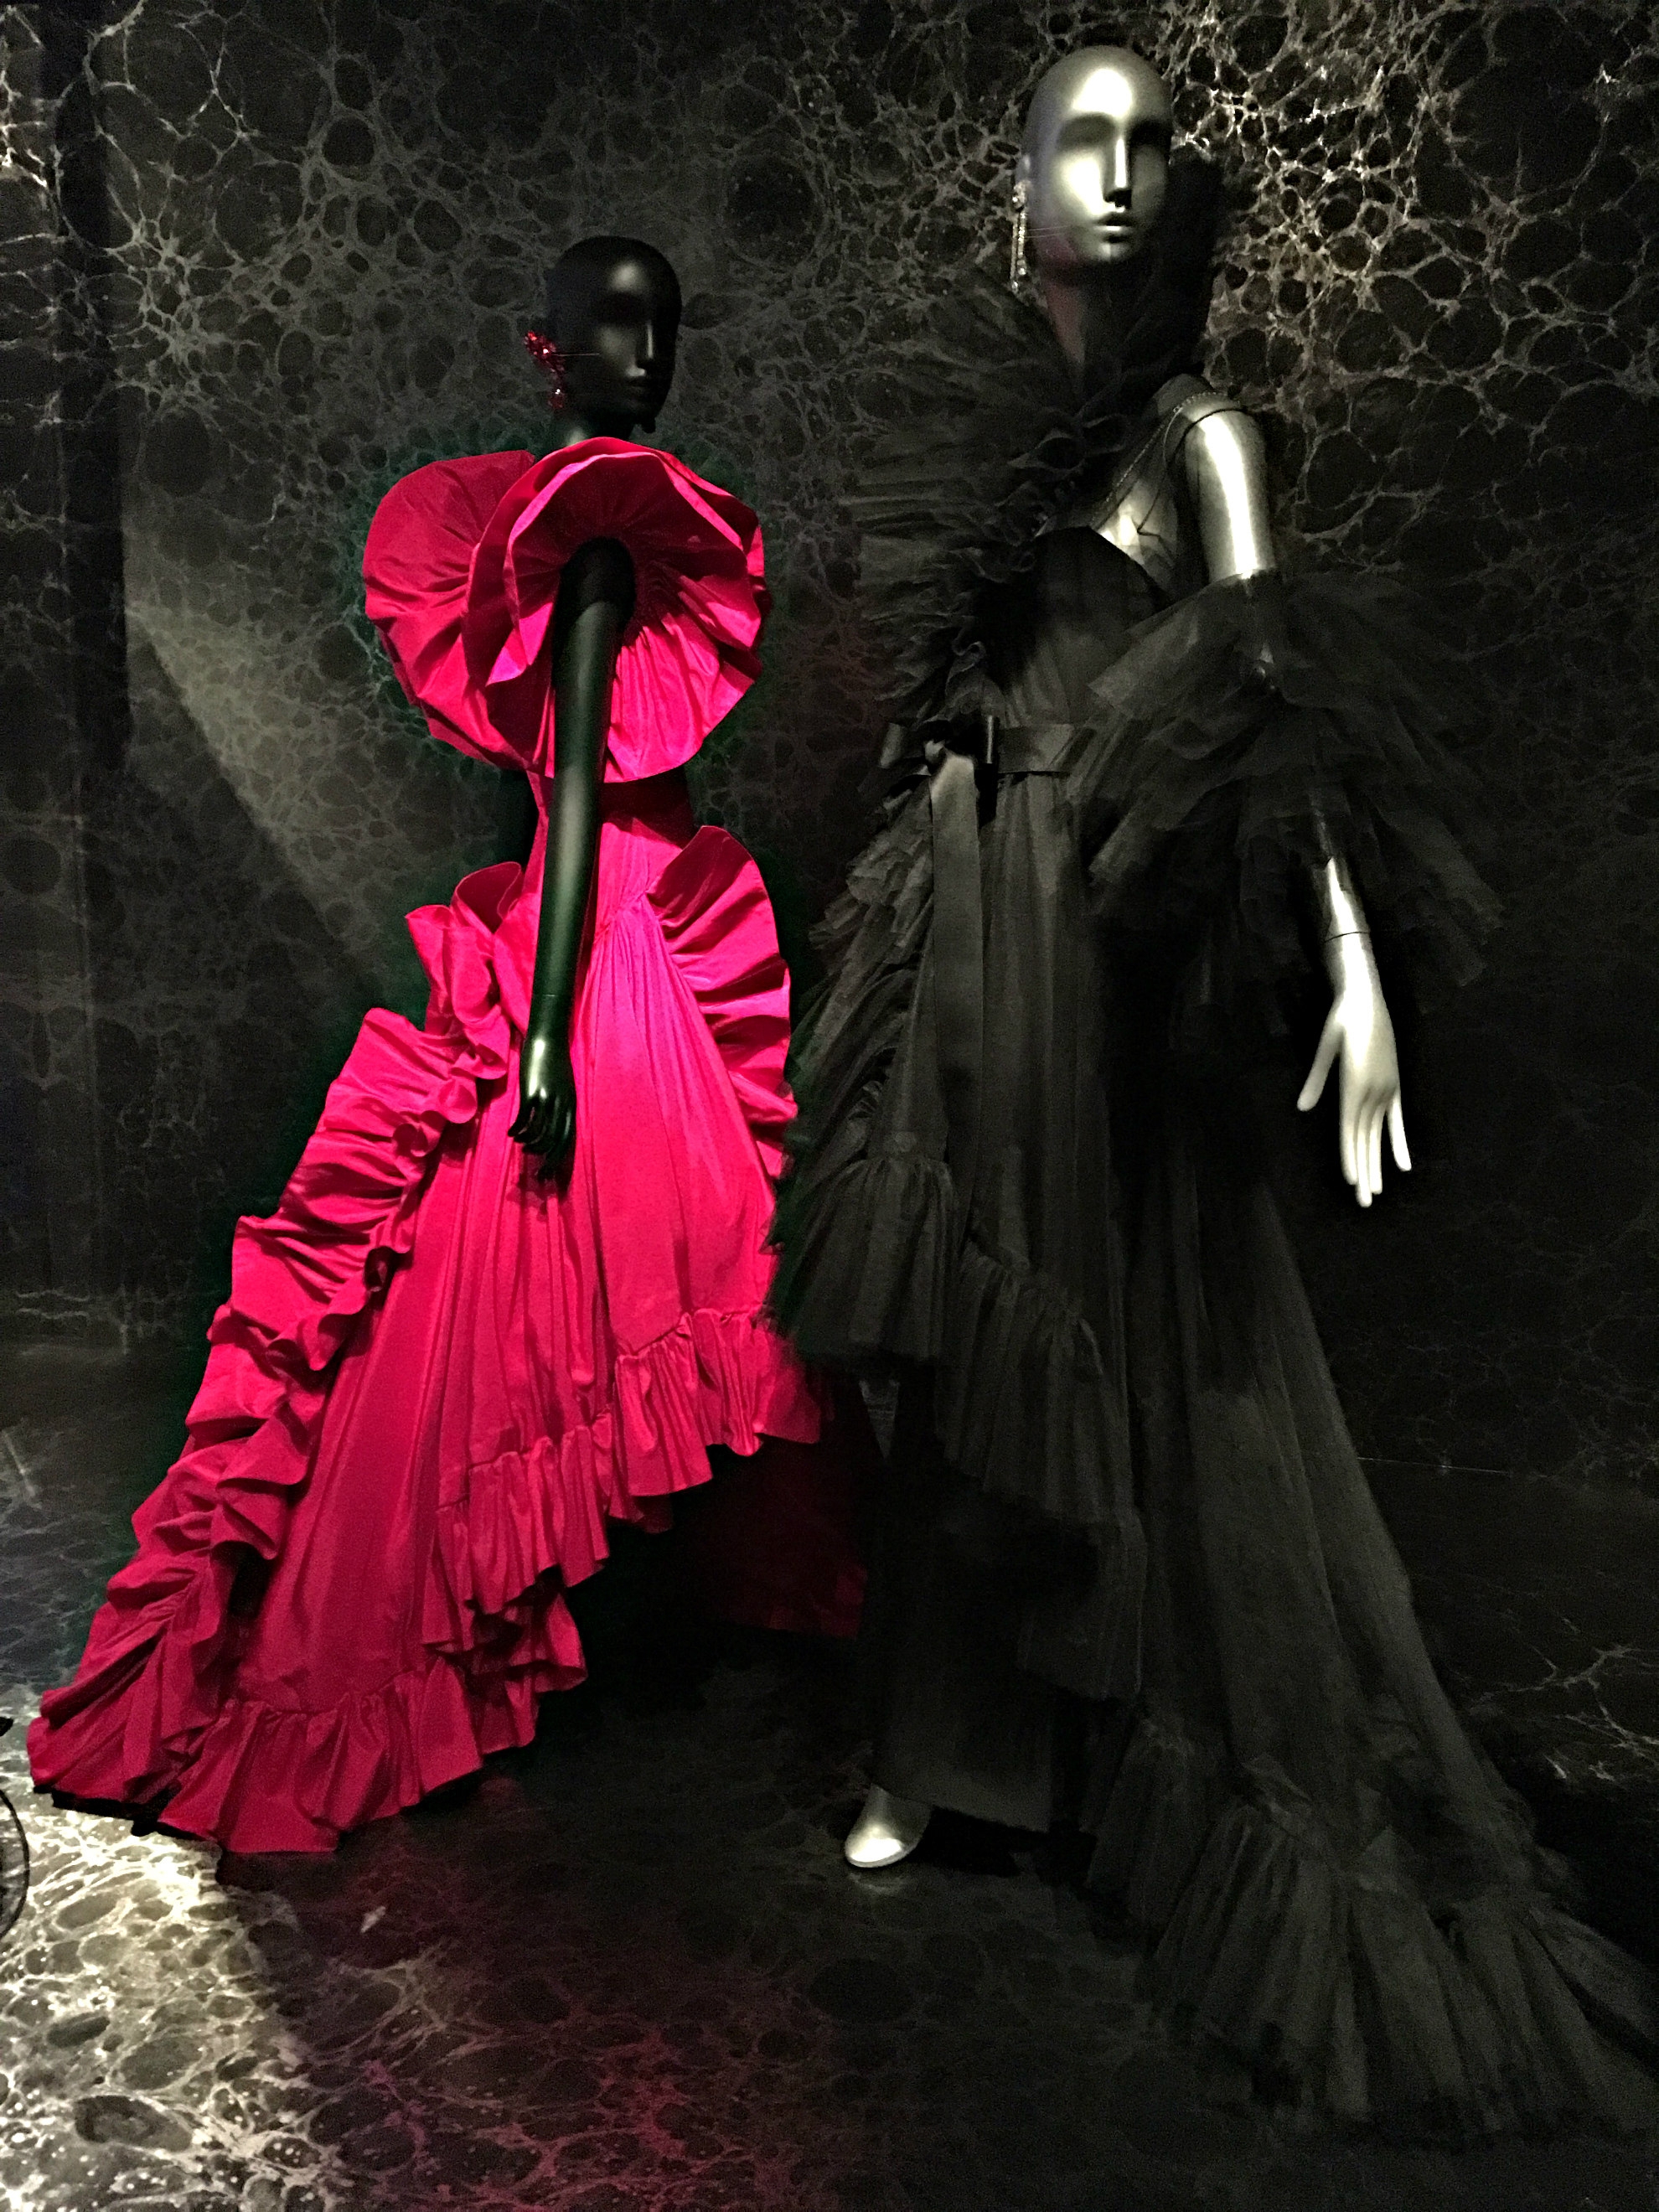 jacqueline-de-ribes-black-and-pink-gowns.jpg